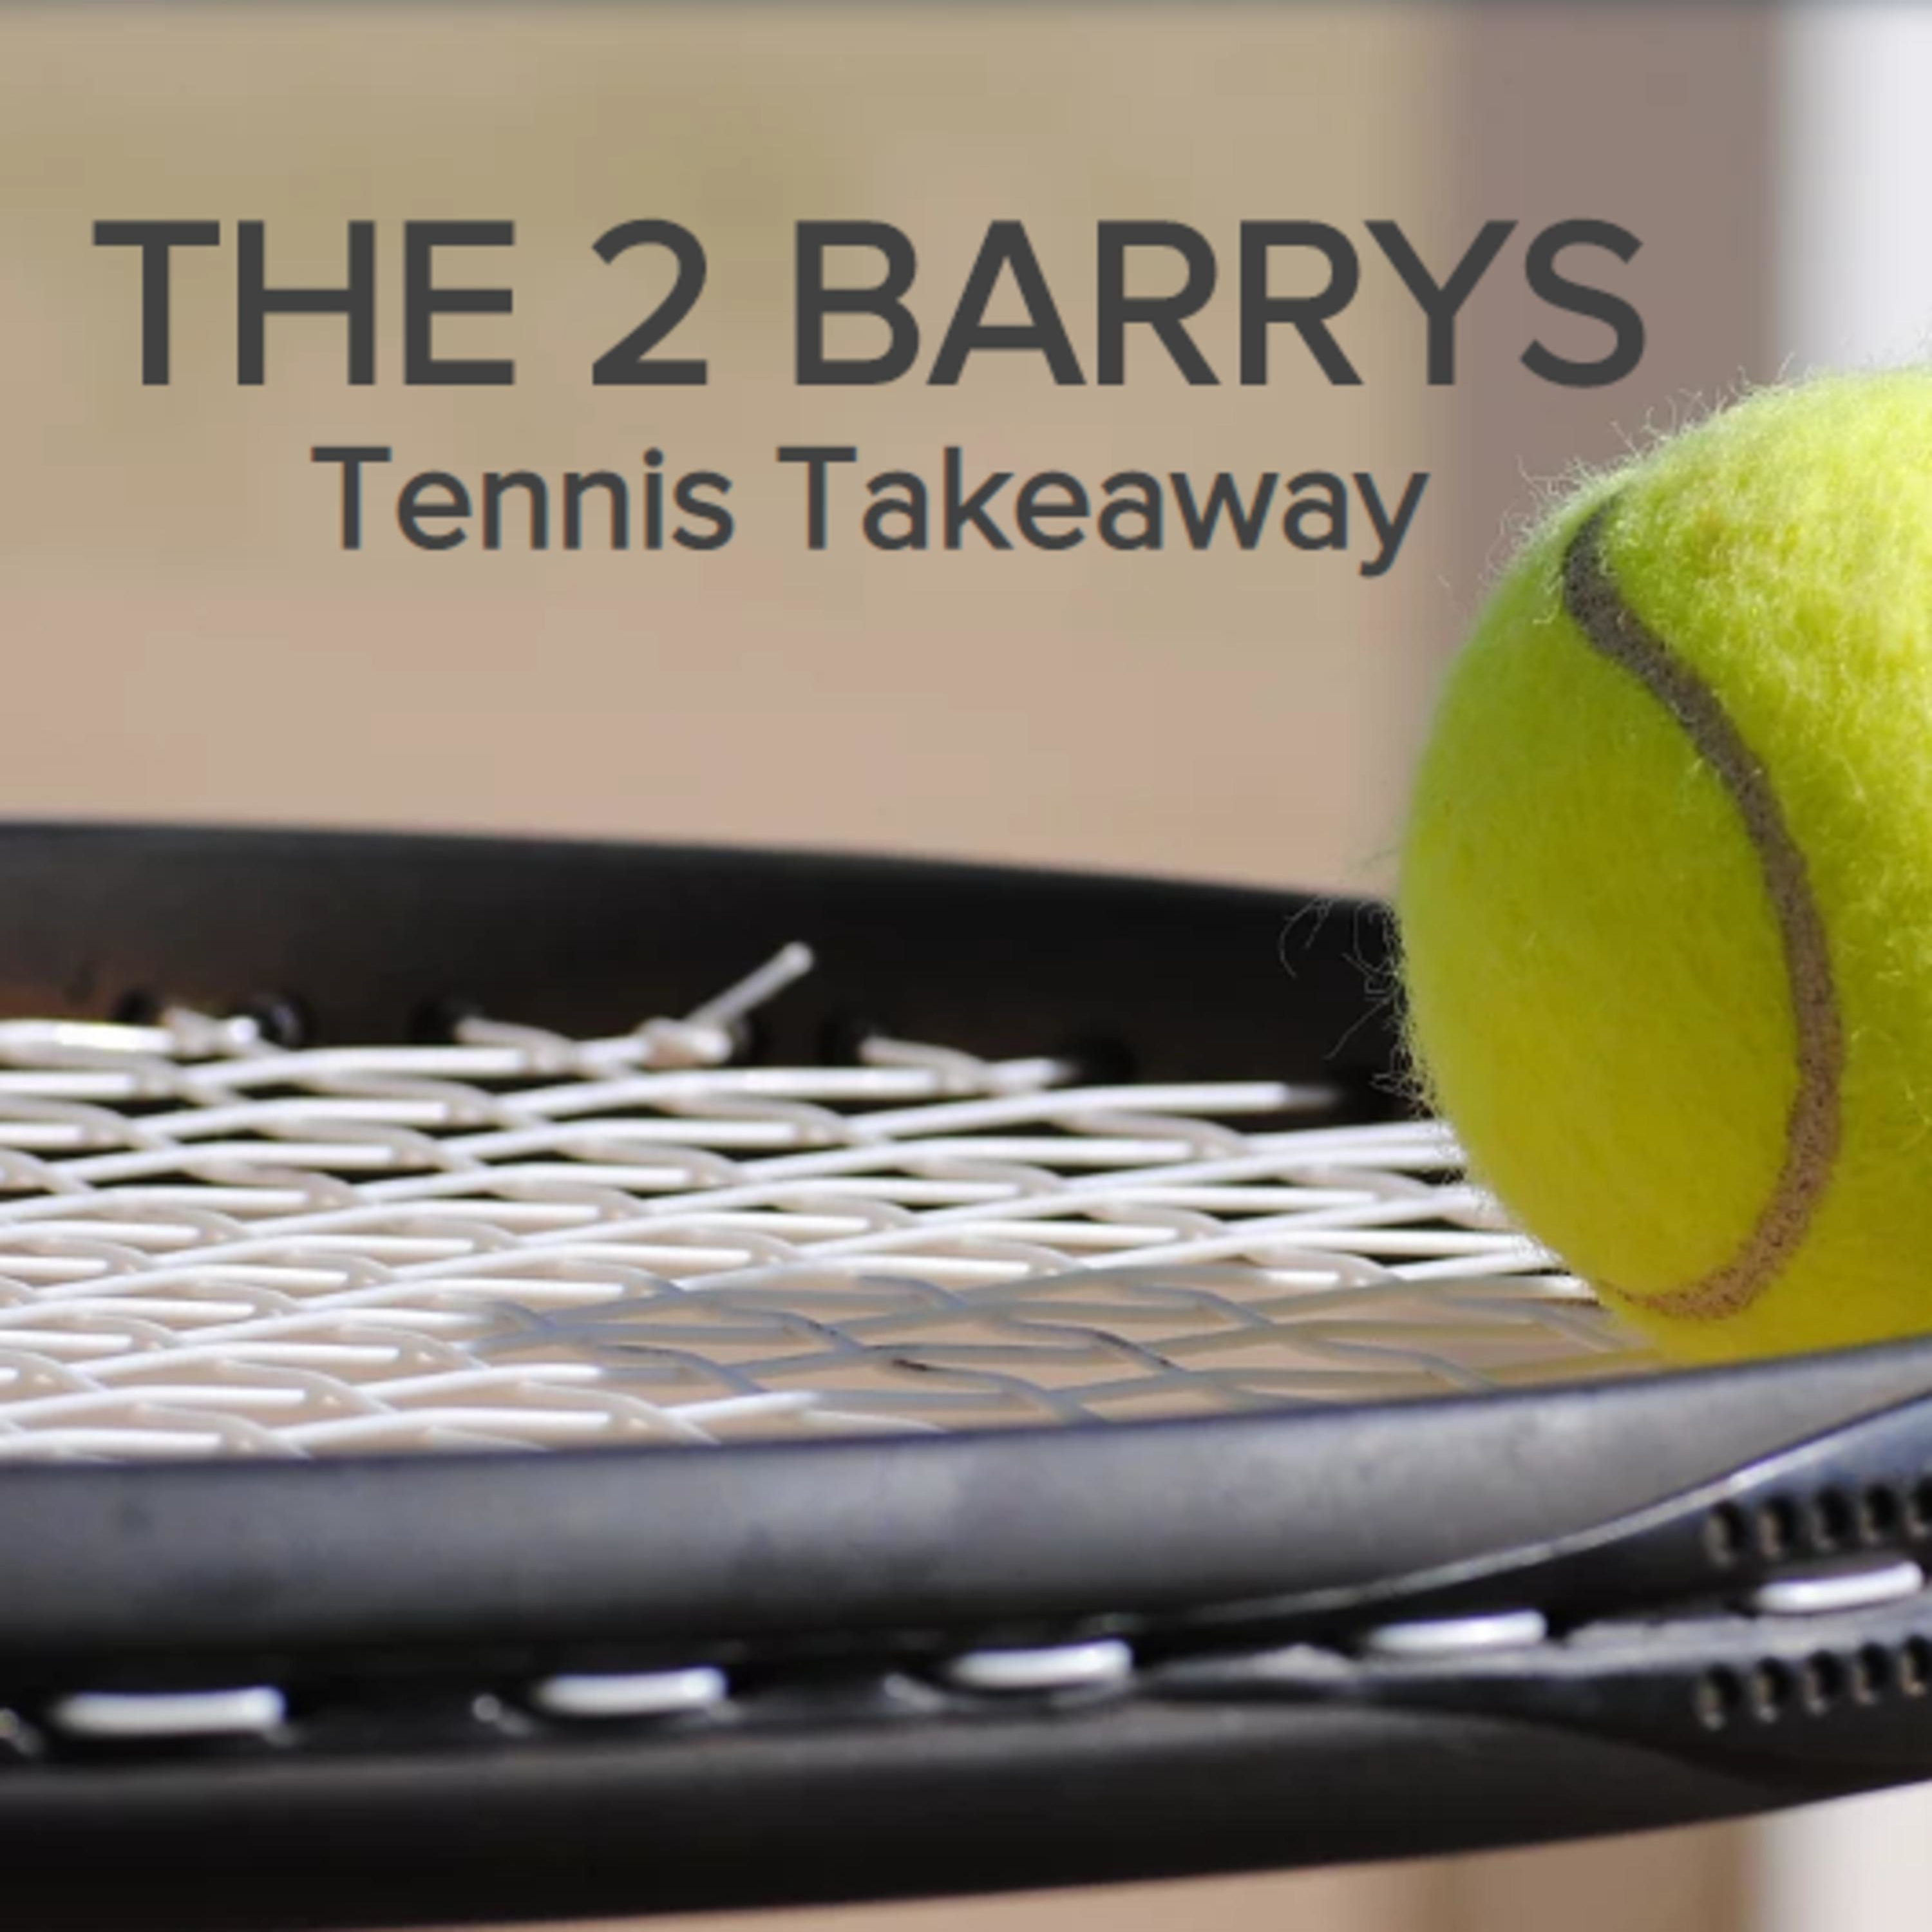 THE 2 BARRYS TENNIS TAKEAWAY